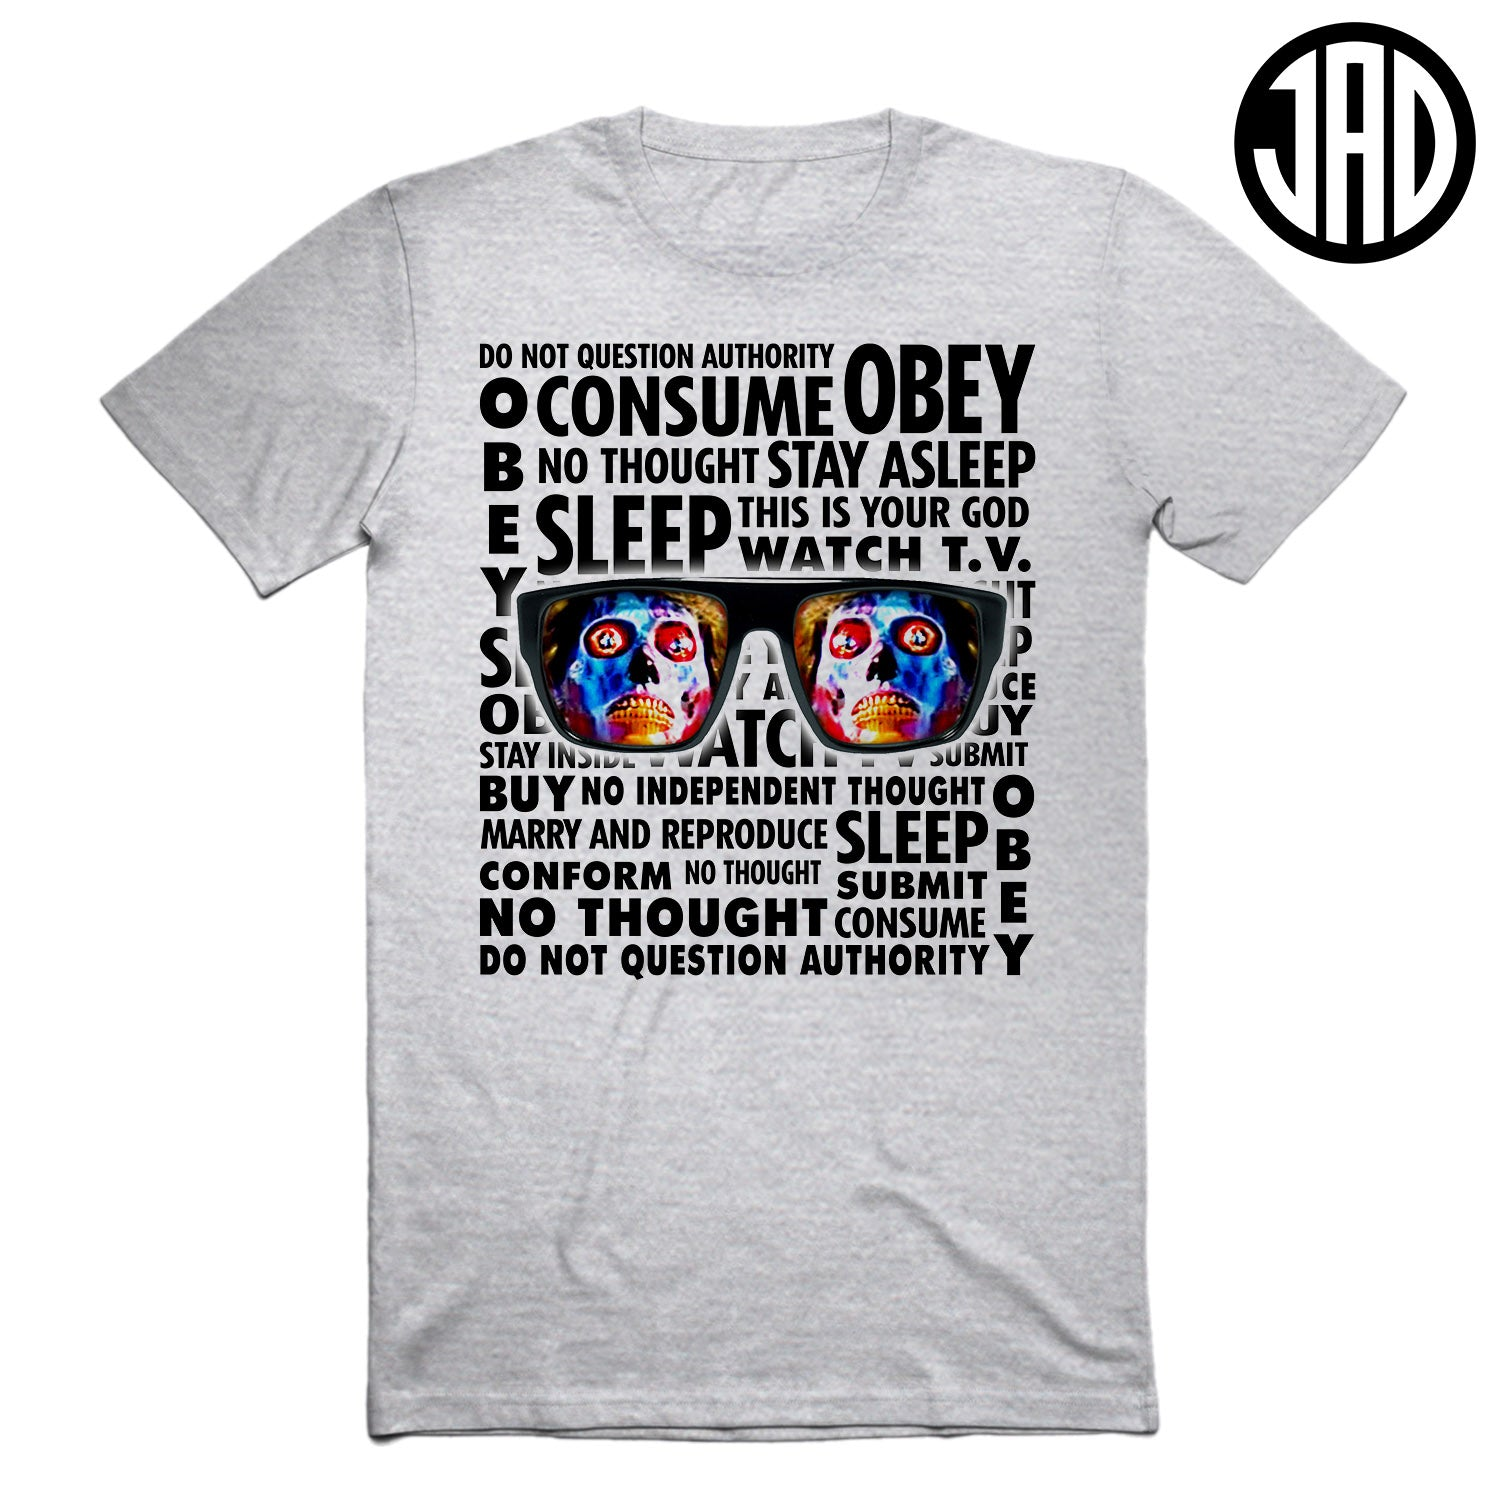 Stay Asleep - Men's (Unisex) Tee